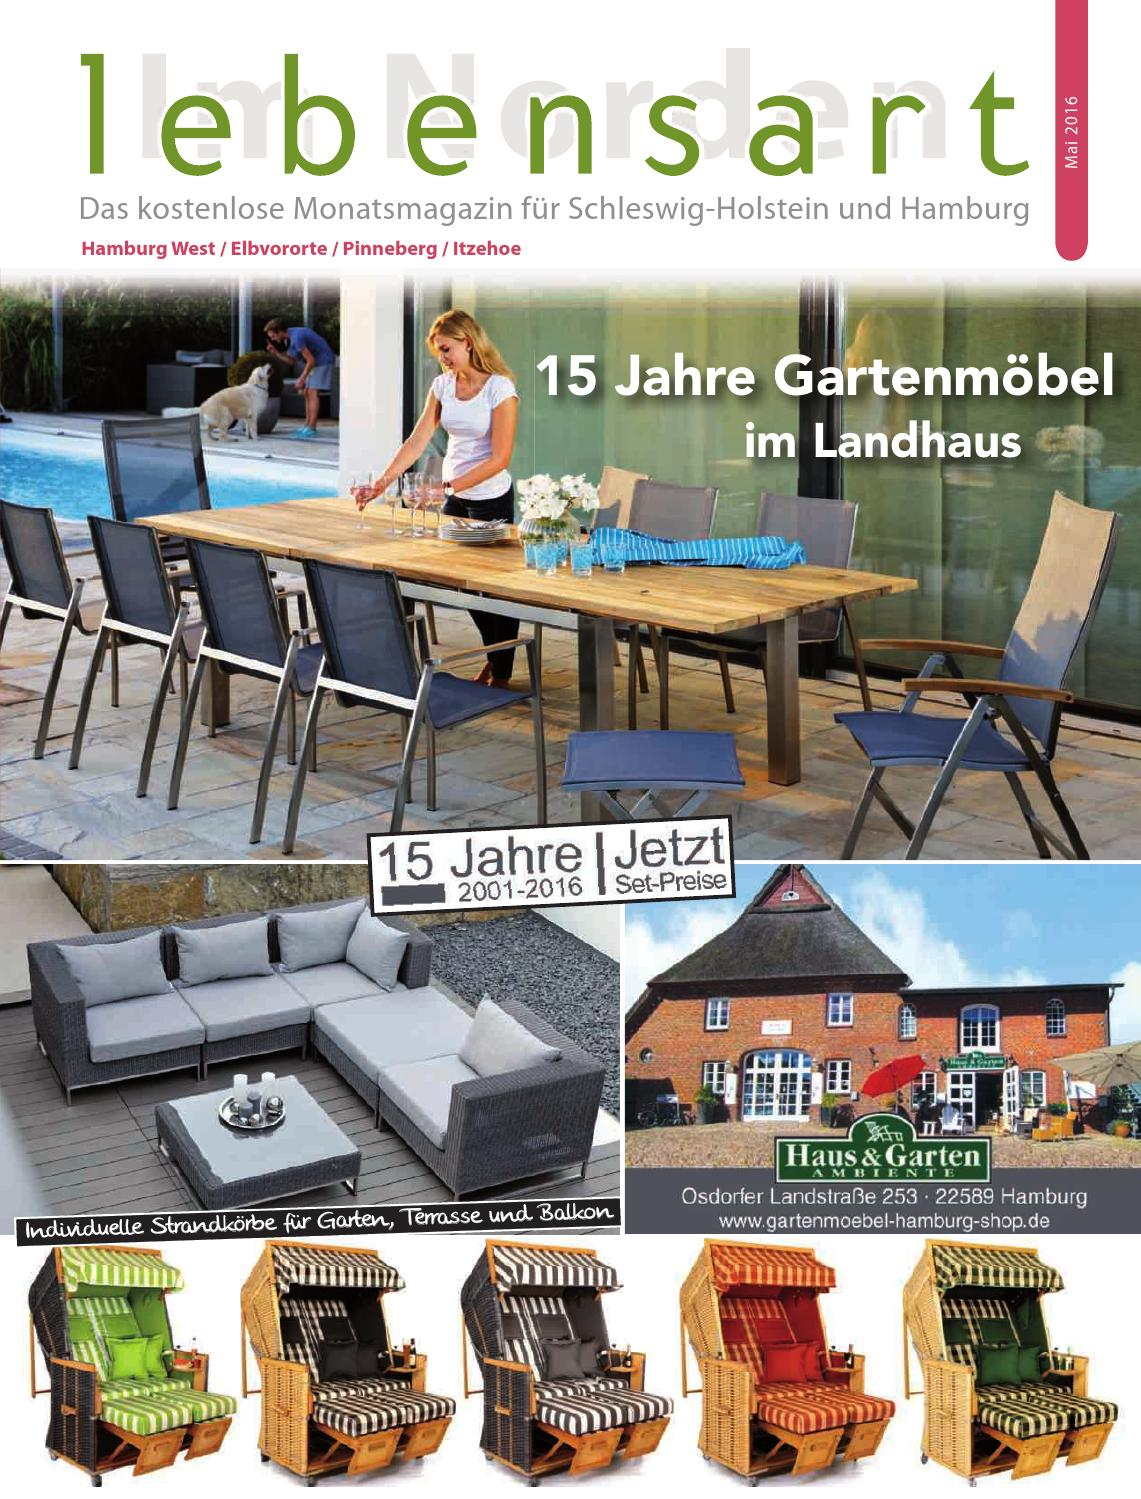 lebensart im norden hamburg west umgebung mai 2016 by verlagskontor schleswig holstein issuu. Black Bedroom Furniture Sets. Home Design Ideas